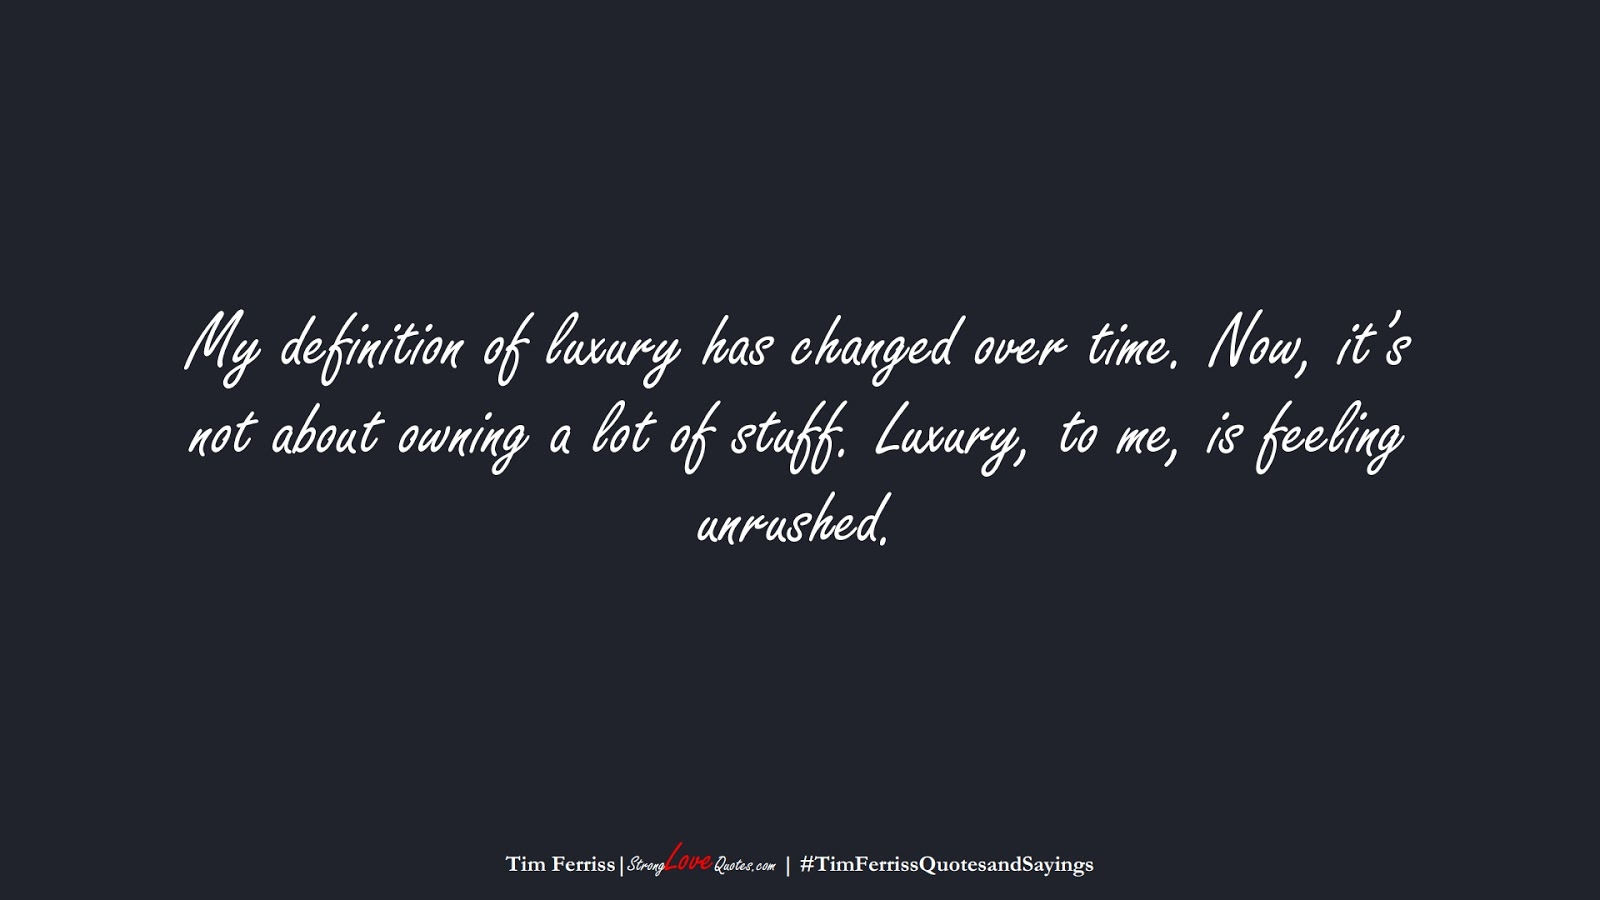 My definition of luxury has changed over time. Now, it's not about owning a lot of stuff. Luxury, to me, is feeling unrushed. (Tim Ferriss);  #TimFerrissQuotesandSayings